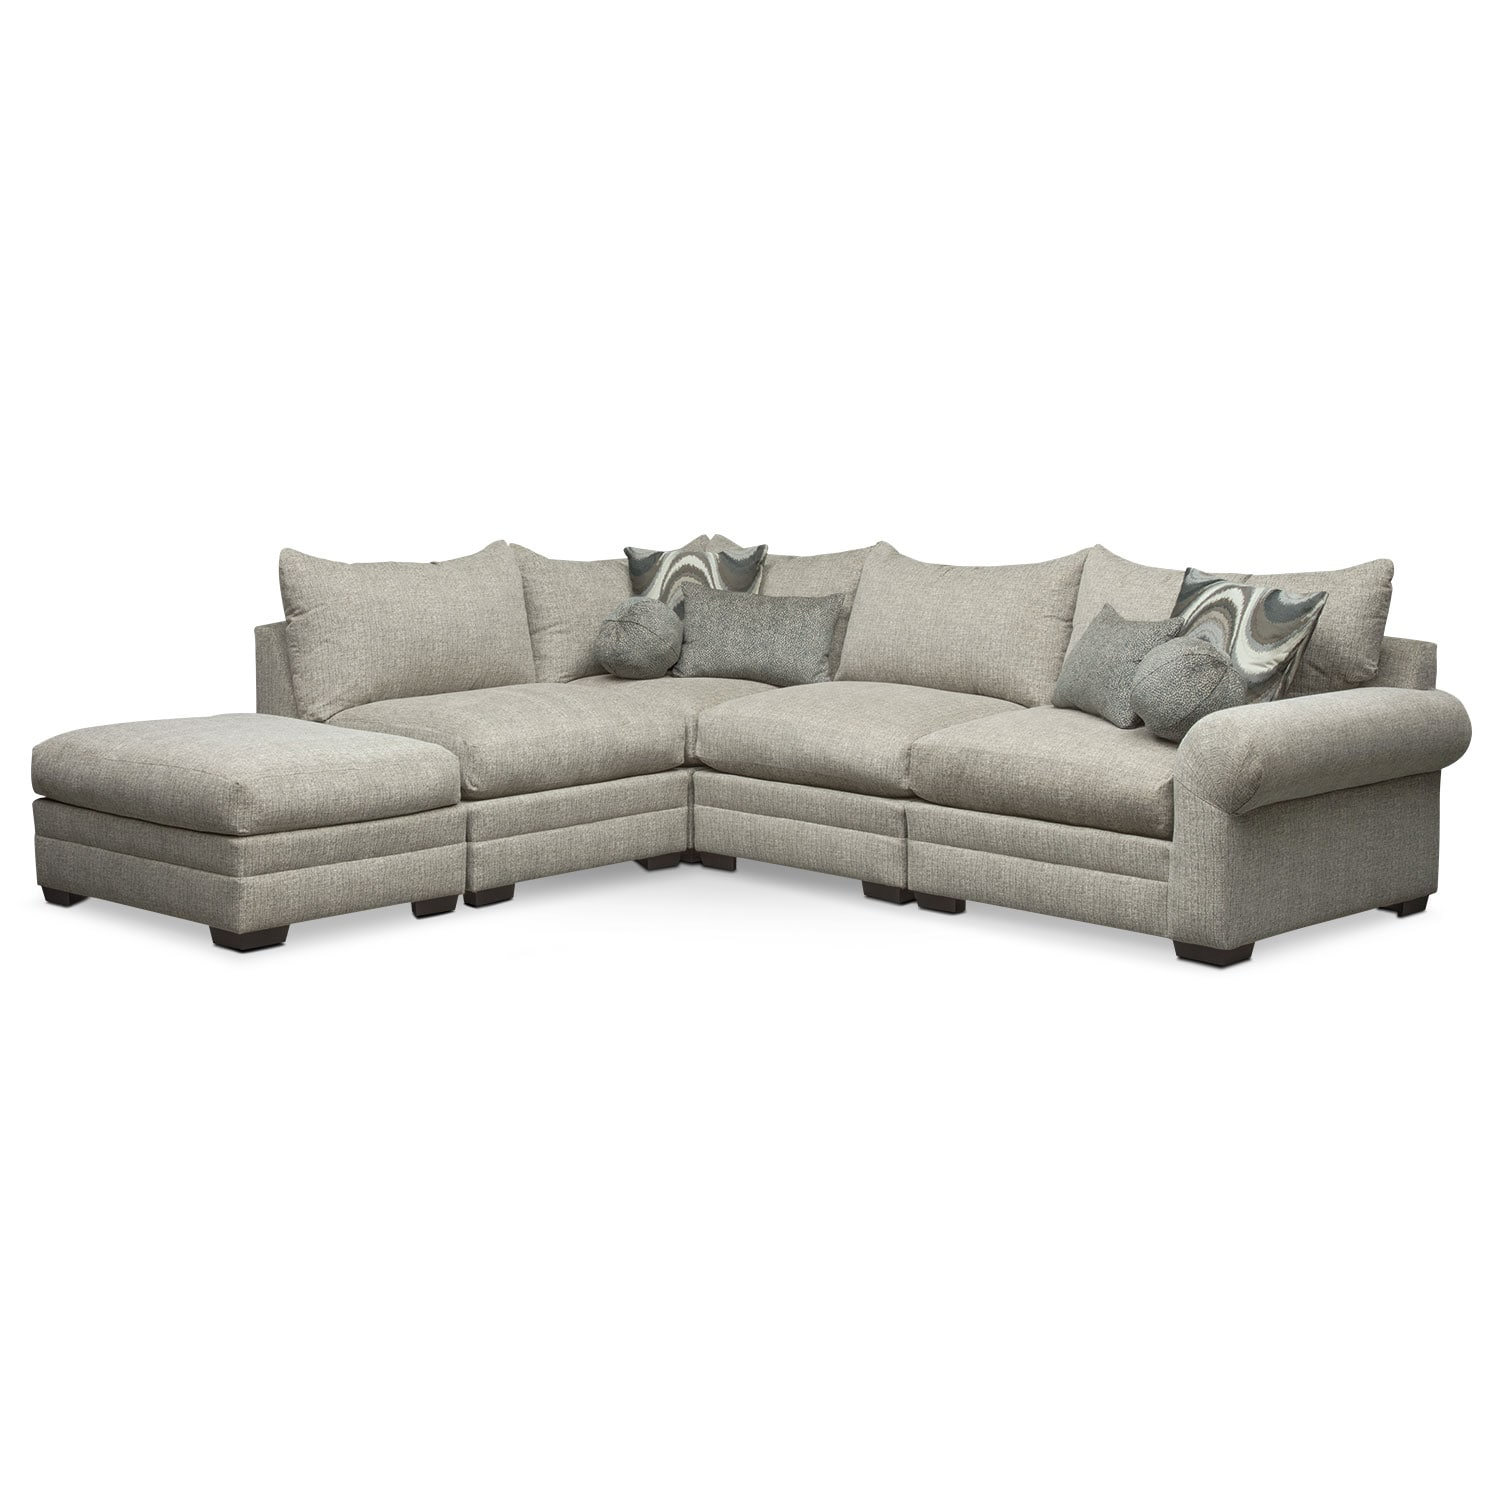 Wilshire 5-Piece Left-Facing Sectional - Gray